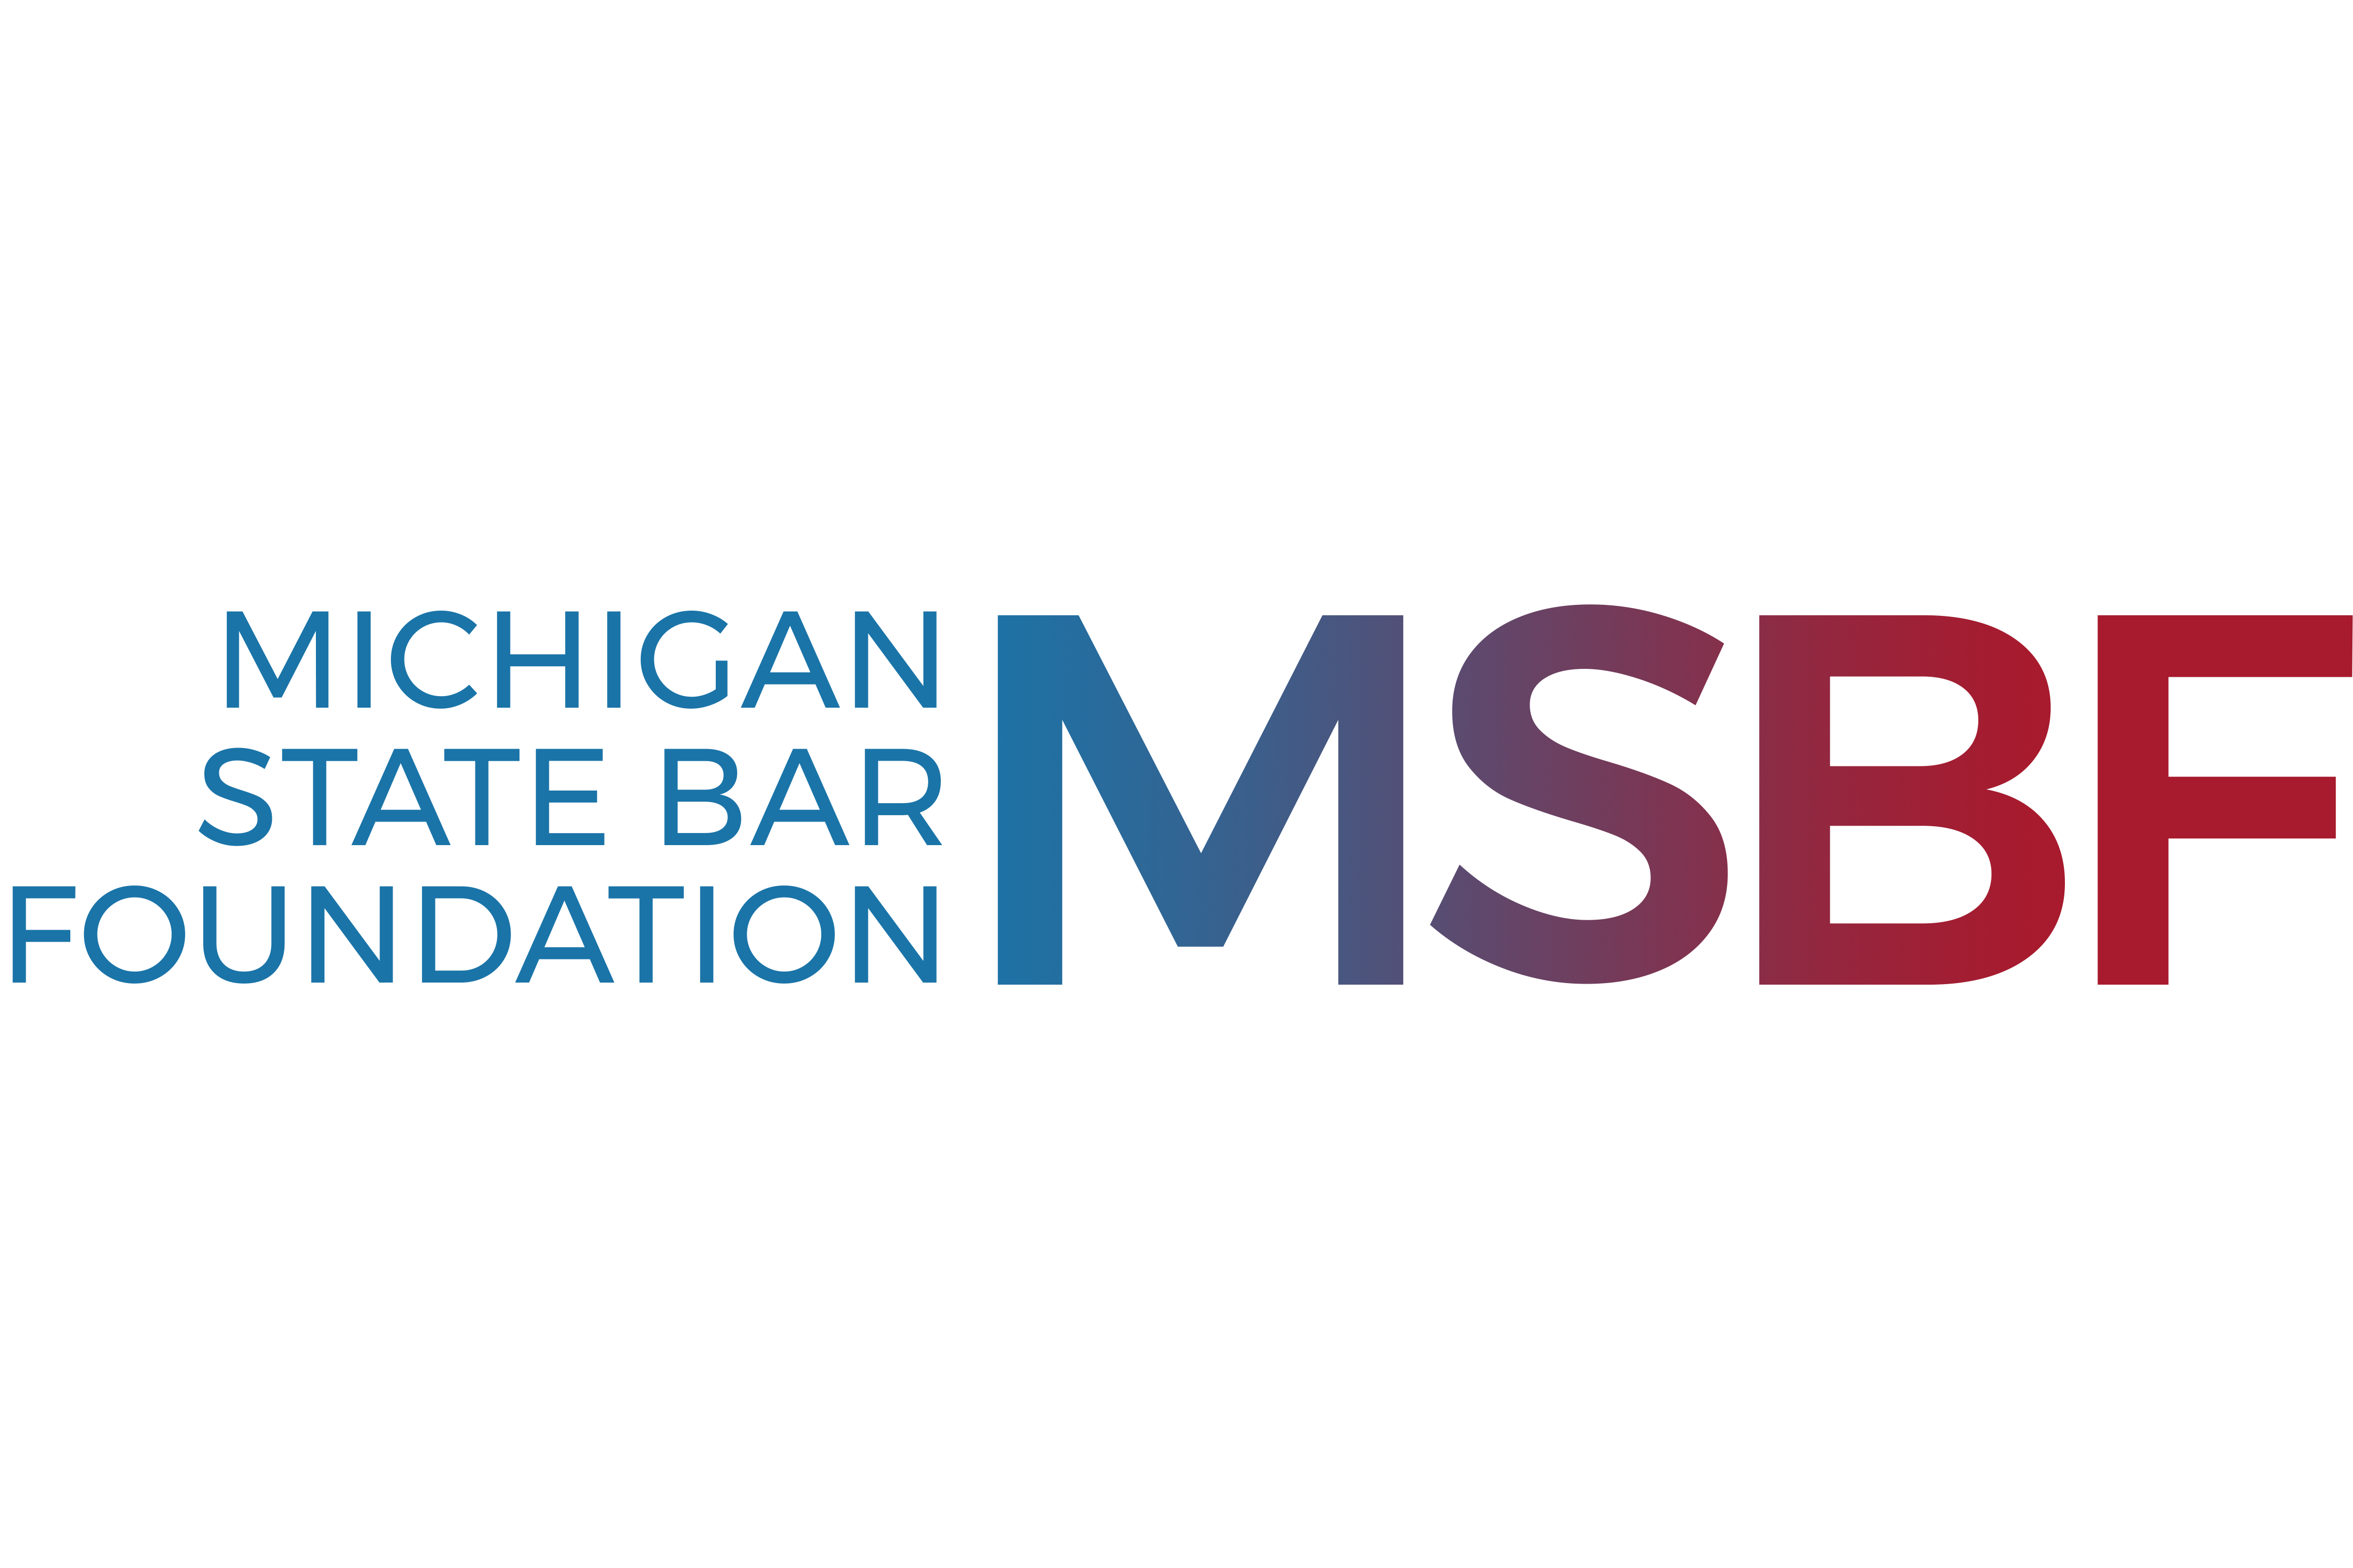 https://iolta.org/wp-content/uploads/MSBF_Logo_FullColorsNEW-CROPPED.png